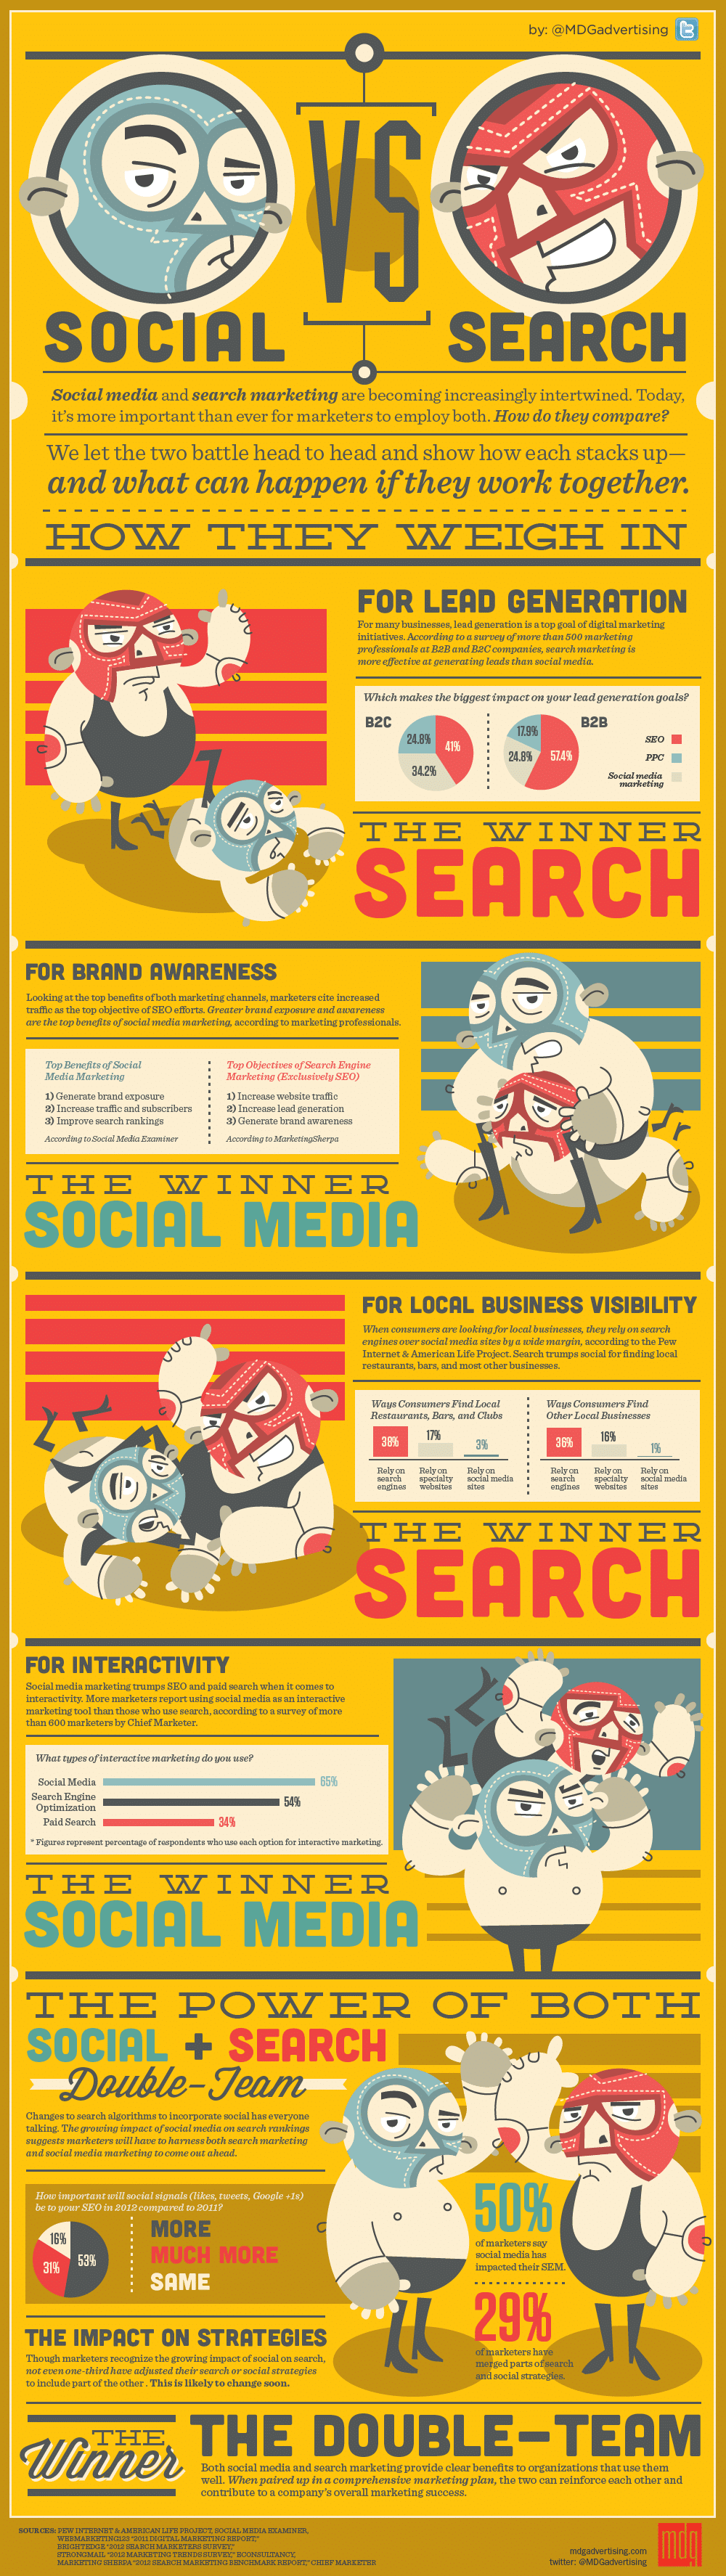 social vs search infographic Infografik: Social Media oder Suchmaschinenmarketing (SEO/SEM)?